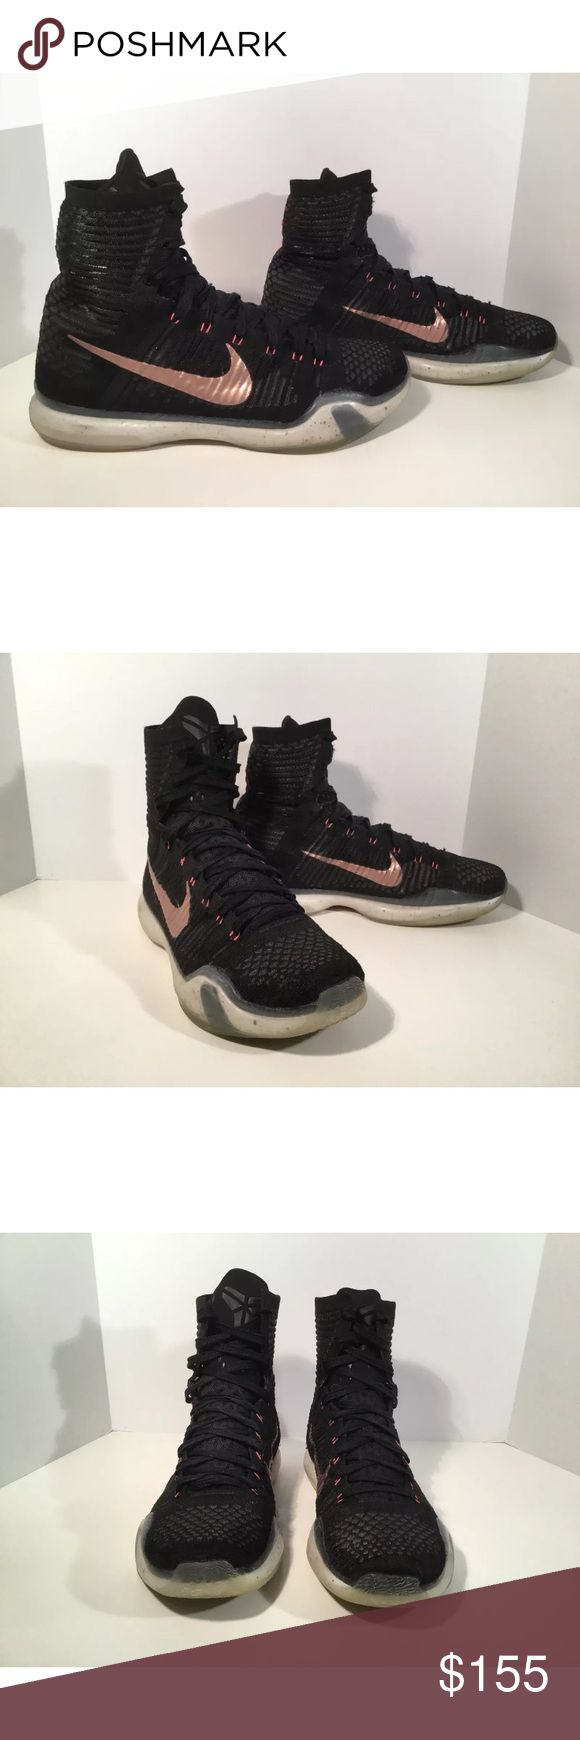 Nike Kobe elite Item details:   -Nike brand  -rose gold  -in good condition, has a pen mark and some damage to the sock area  -Men's Size 10.5  -Kobe 10   All my shoes are 100% authentic. Buyer satisfaction is very important to me and I will always do my best to make sure you have a good experience when purchasing my items. I sell many hard to find, past season, and popular shoes at discount prices. If I have the box for the shoes, I always include it in the pictures. Nike Shoes Athletic…